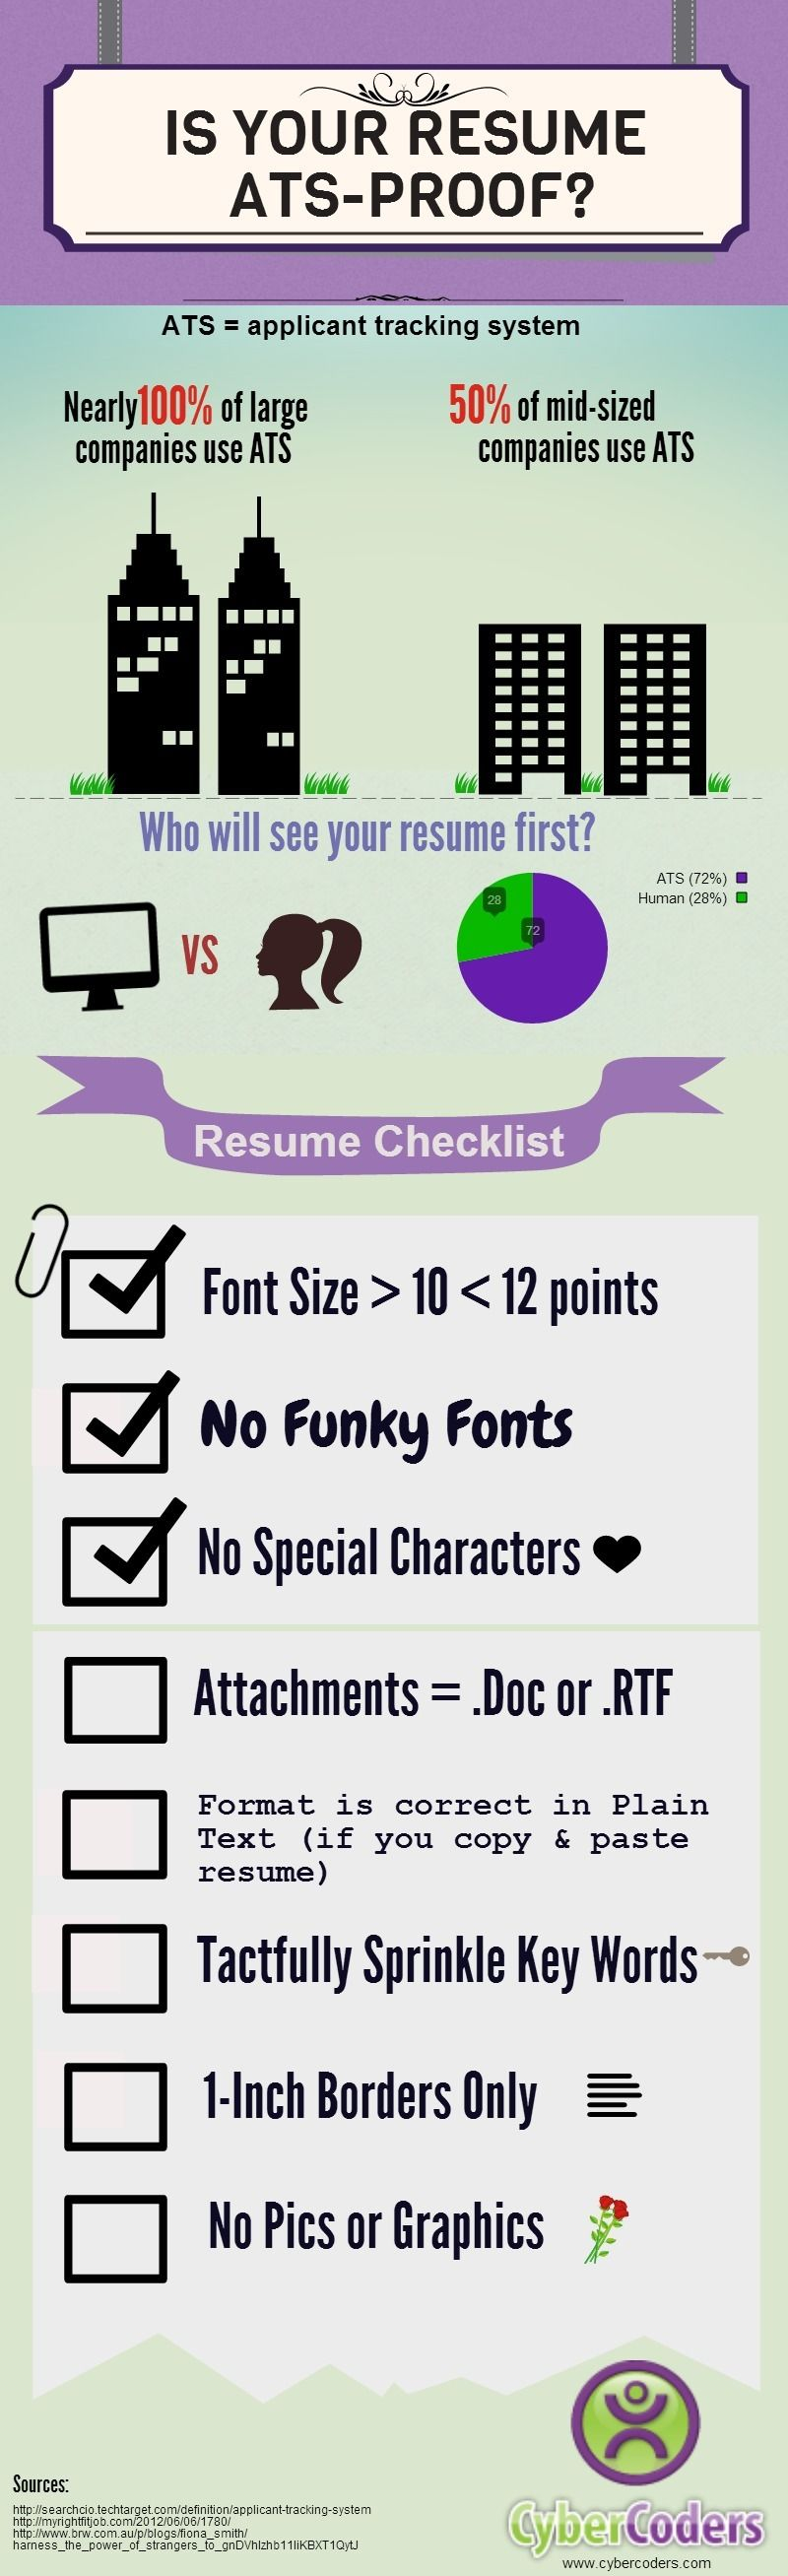 cybercoders infographic  is your resume ats